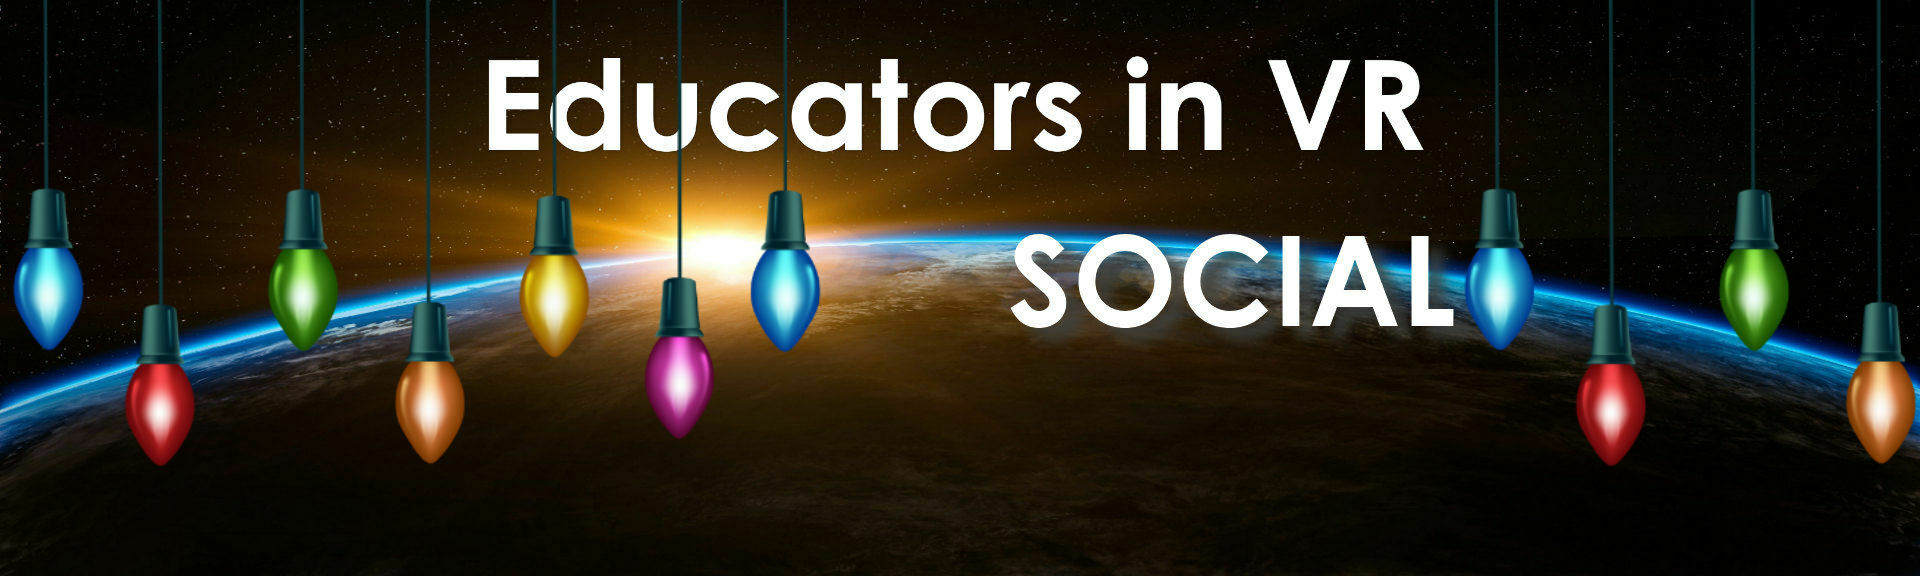 Educators in vr   educators in vr social   altspace banner holiday